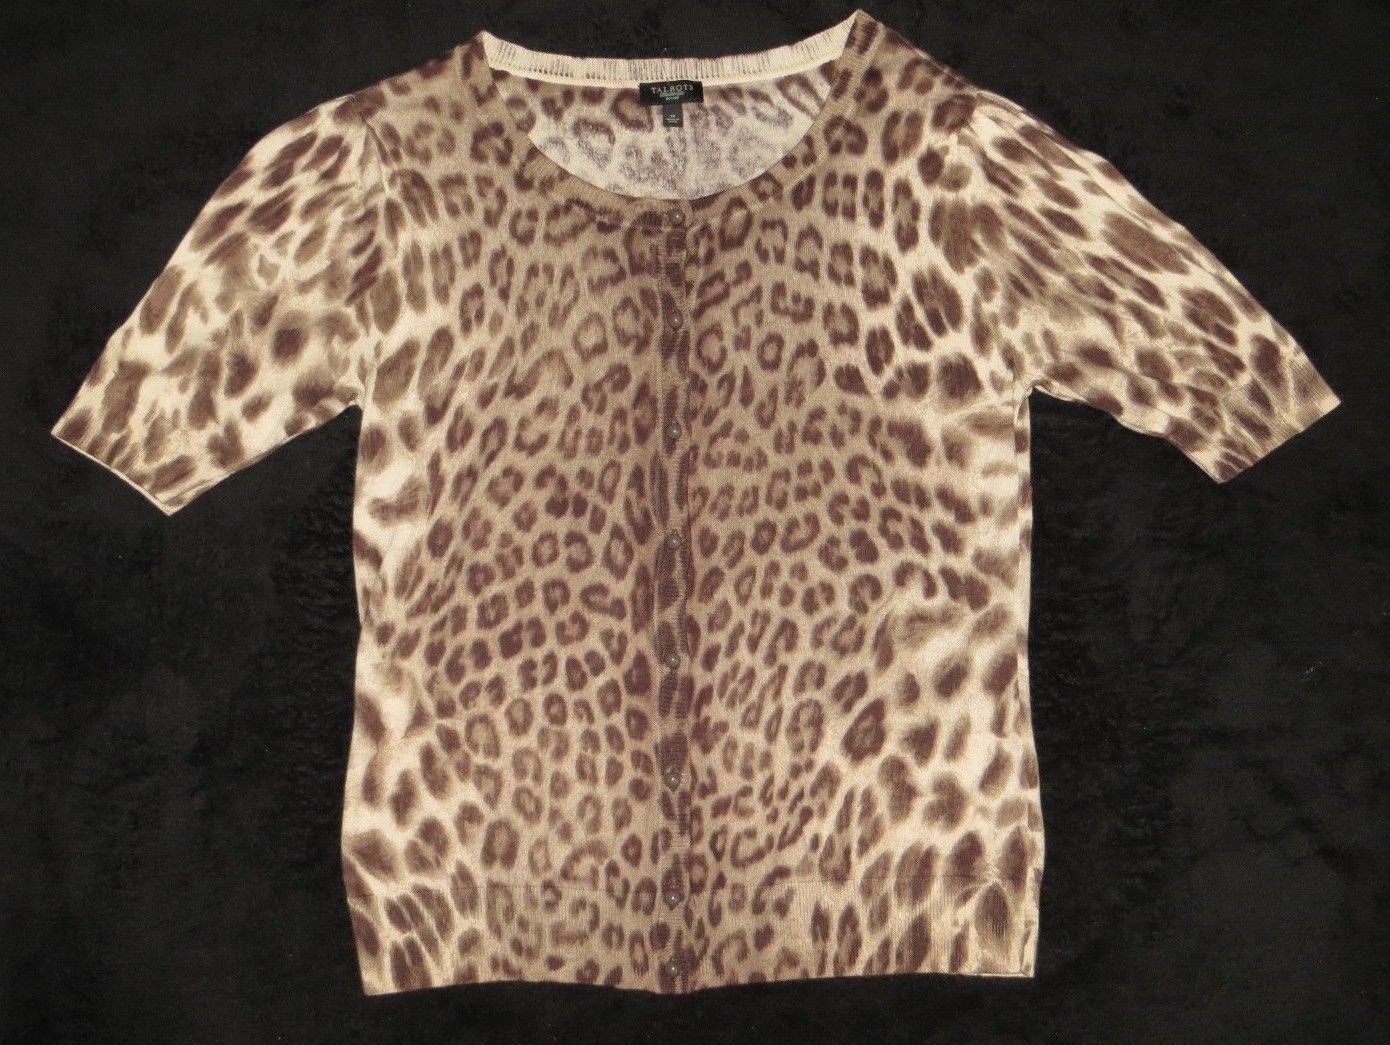 Primary image for Talbots Petites Leopard Sweater Size Medium M